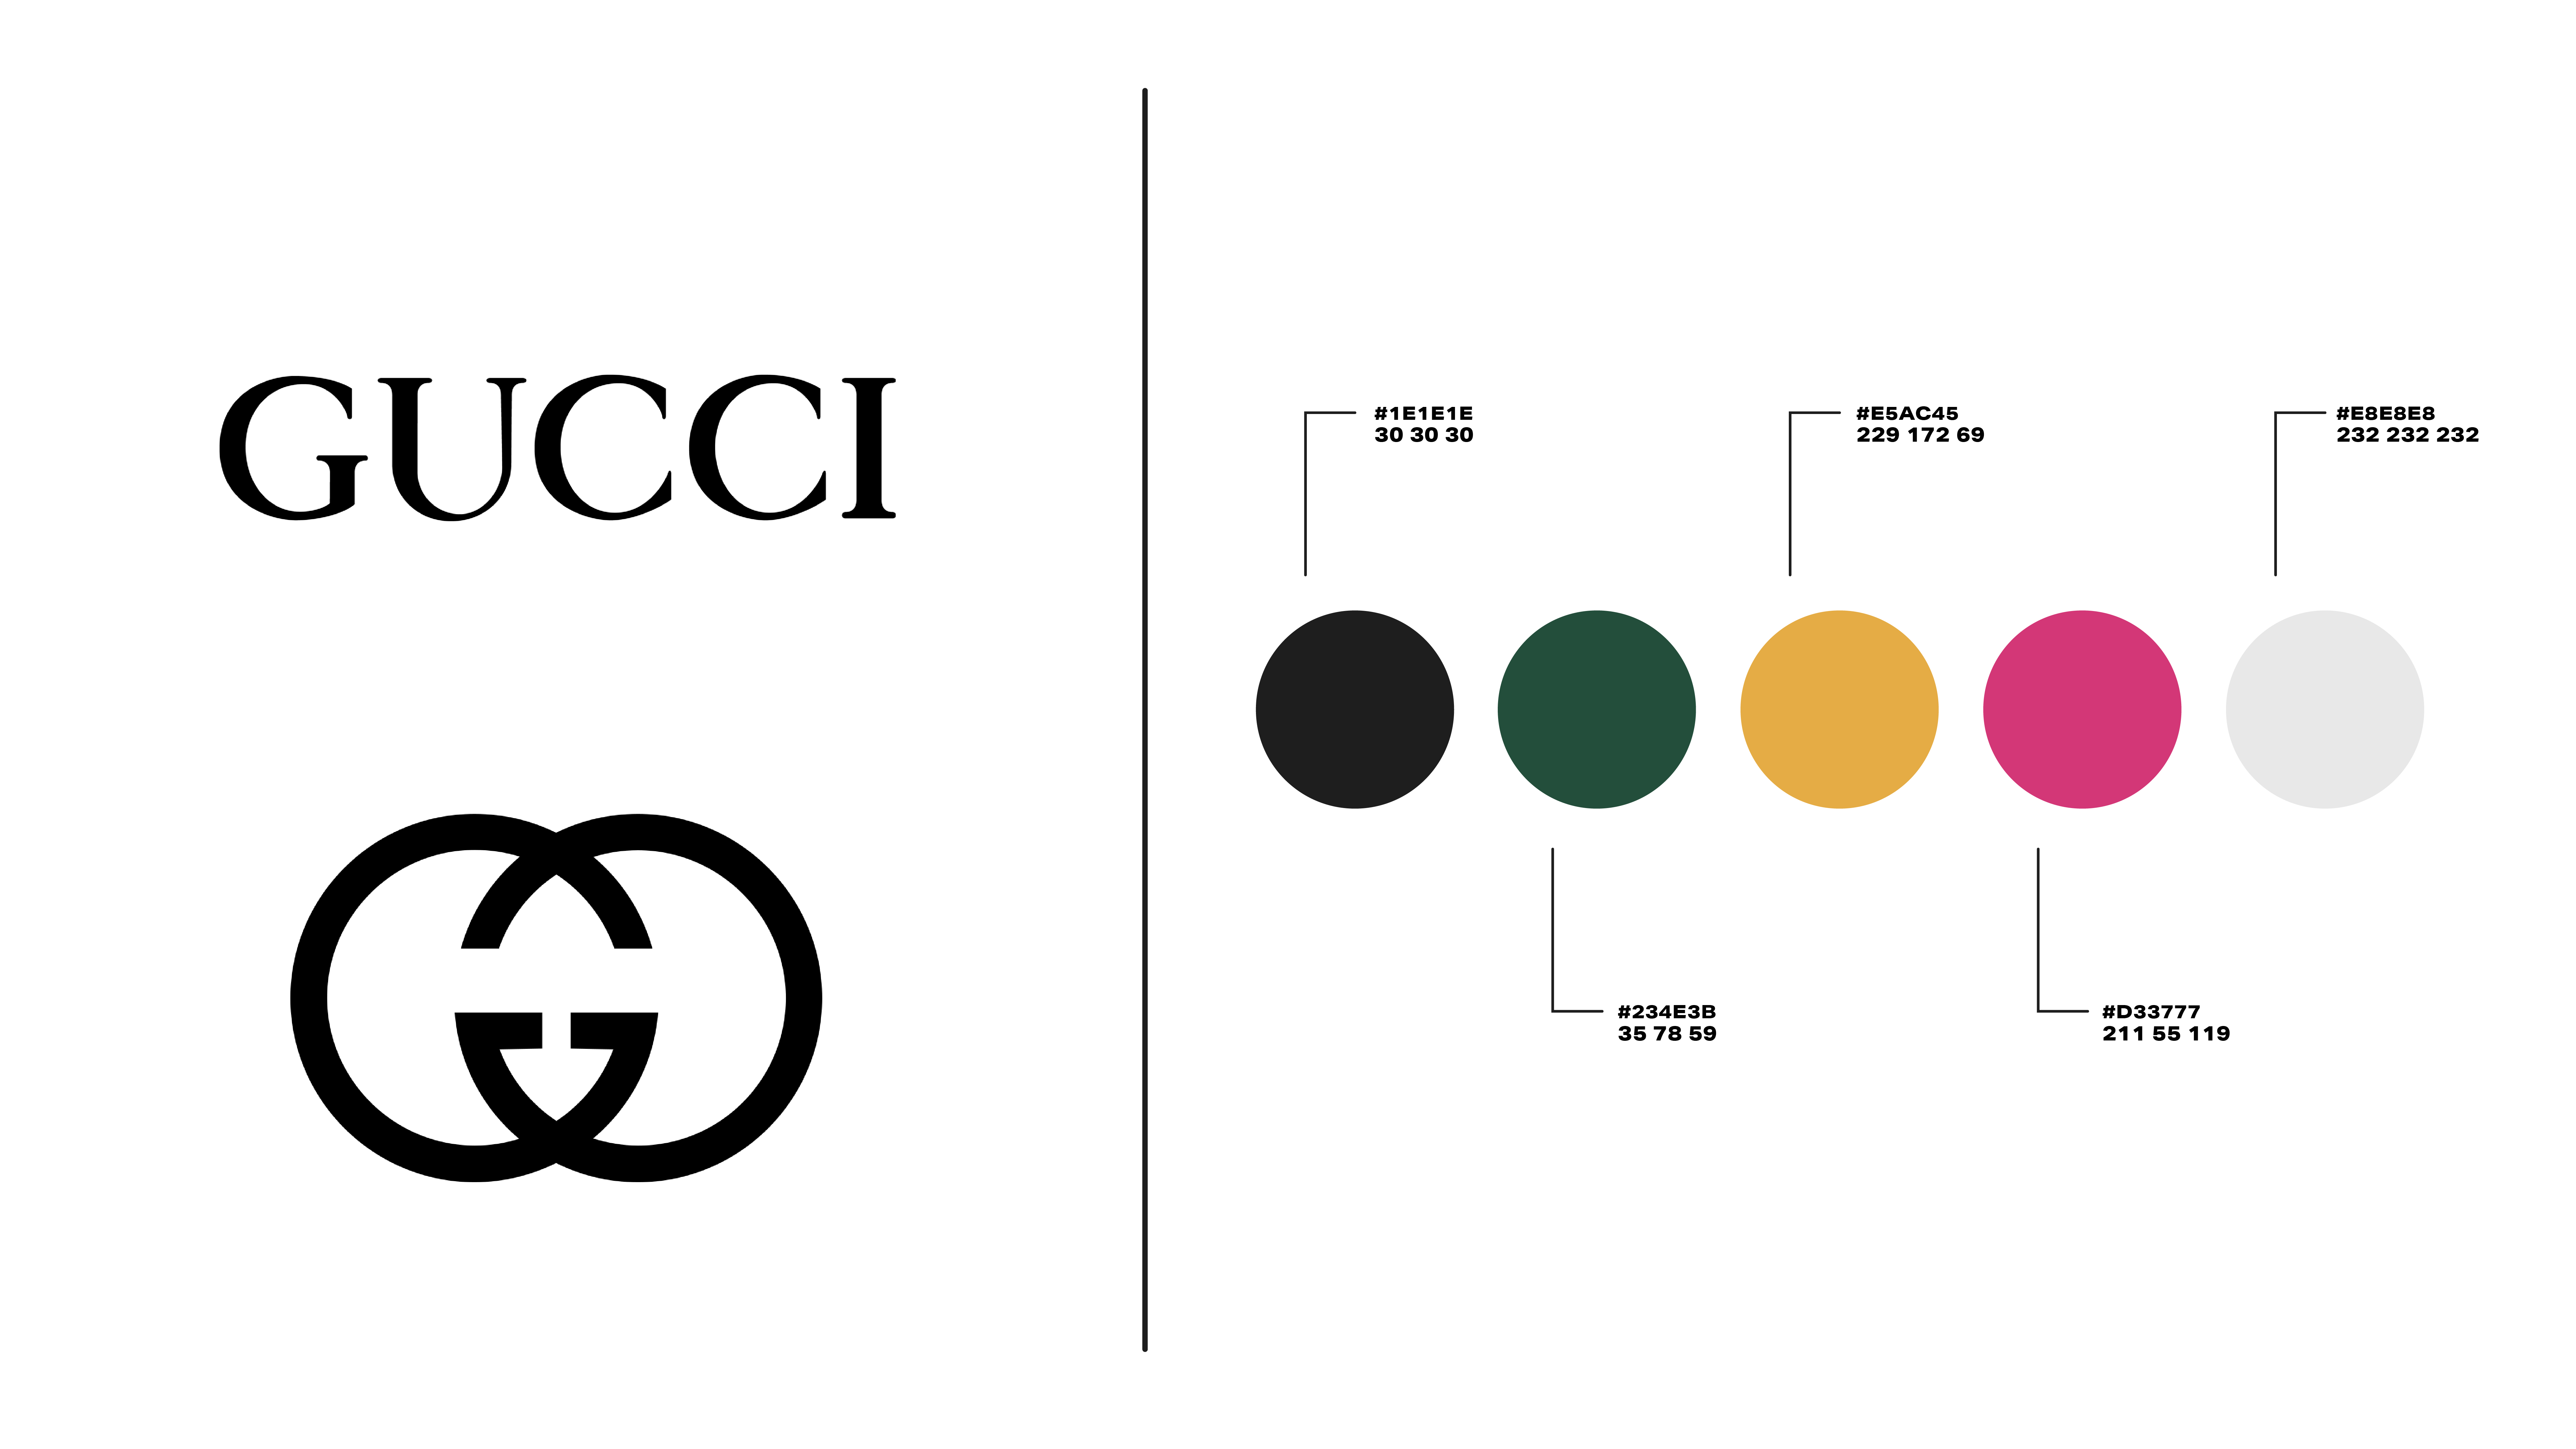 gucci_LOGOS-COLORS